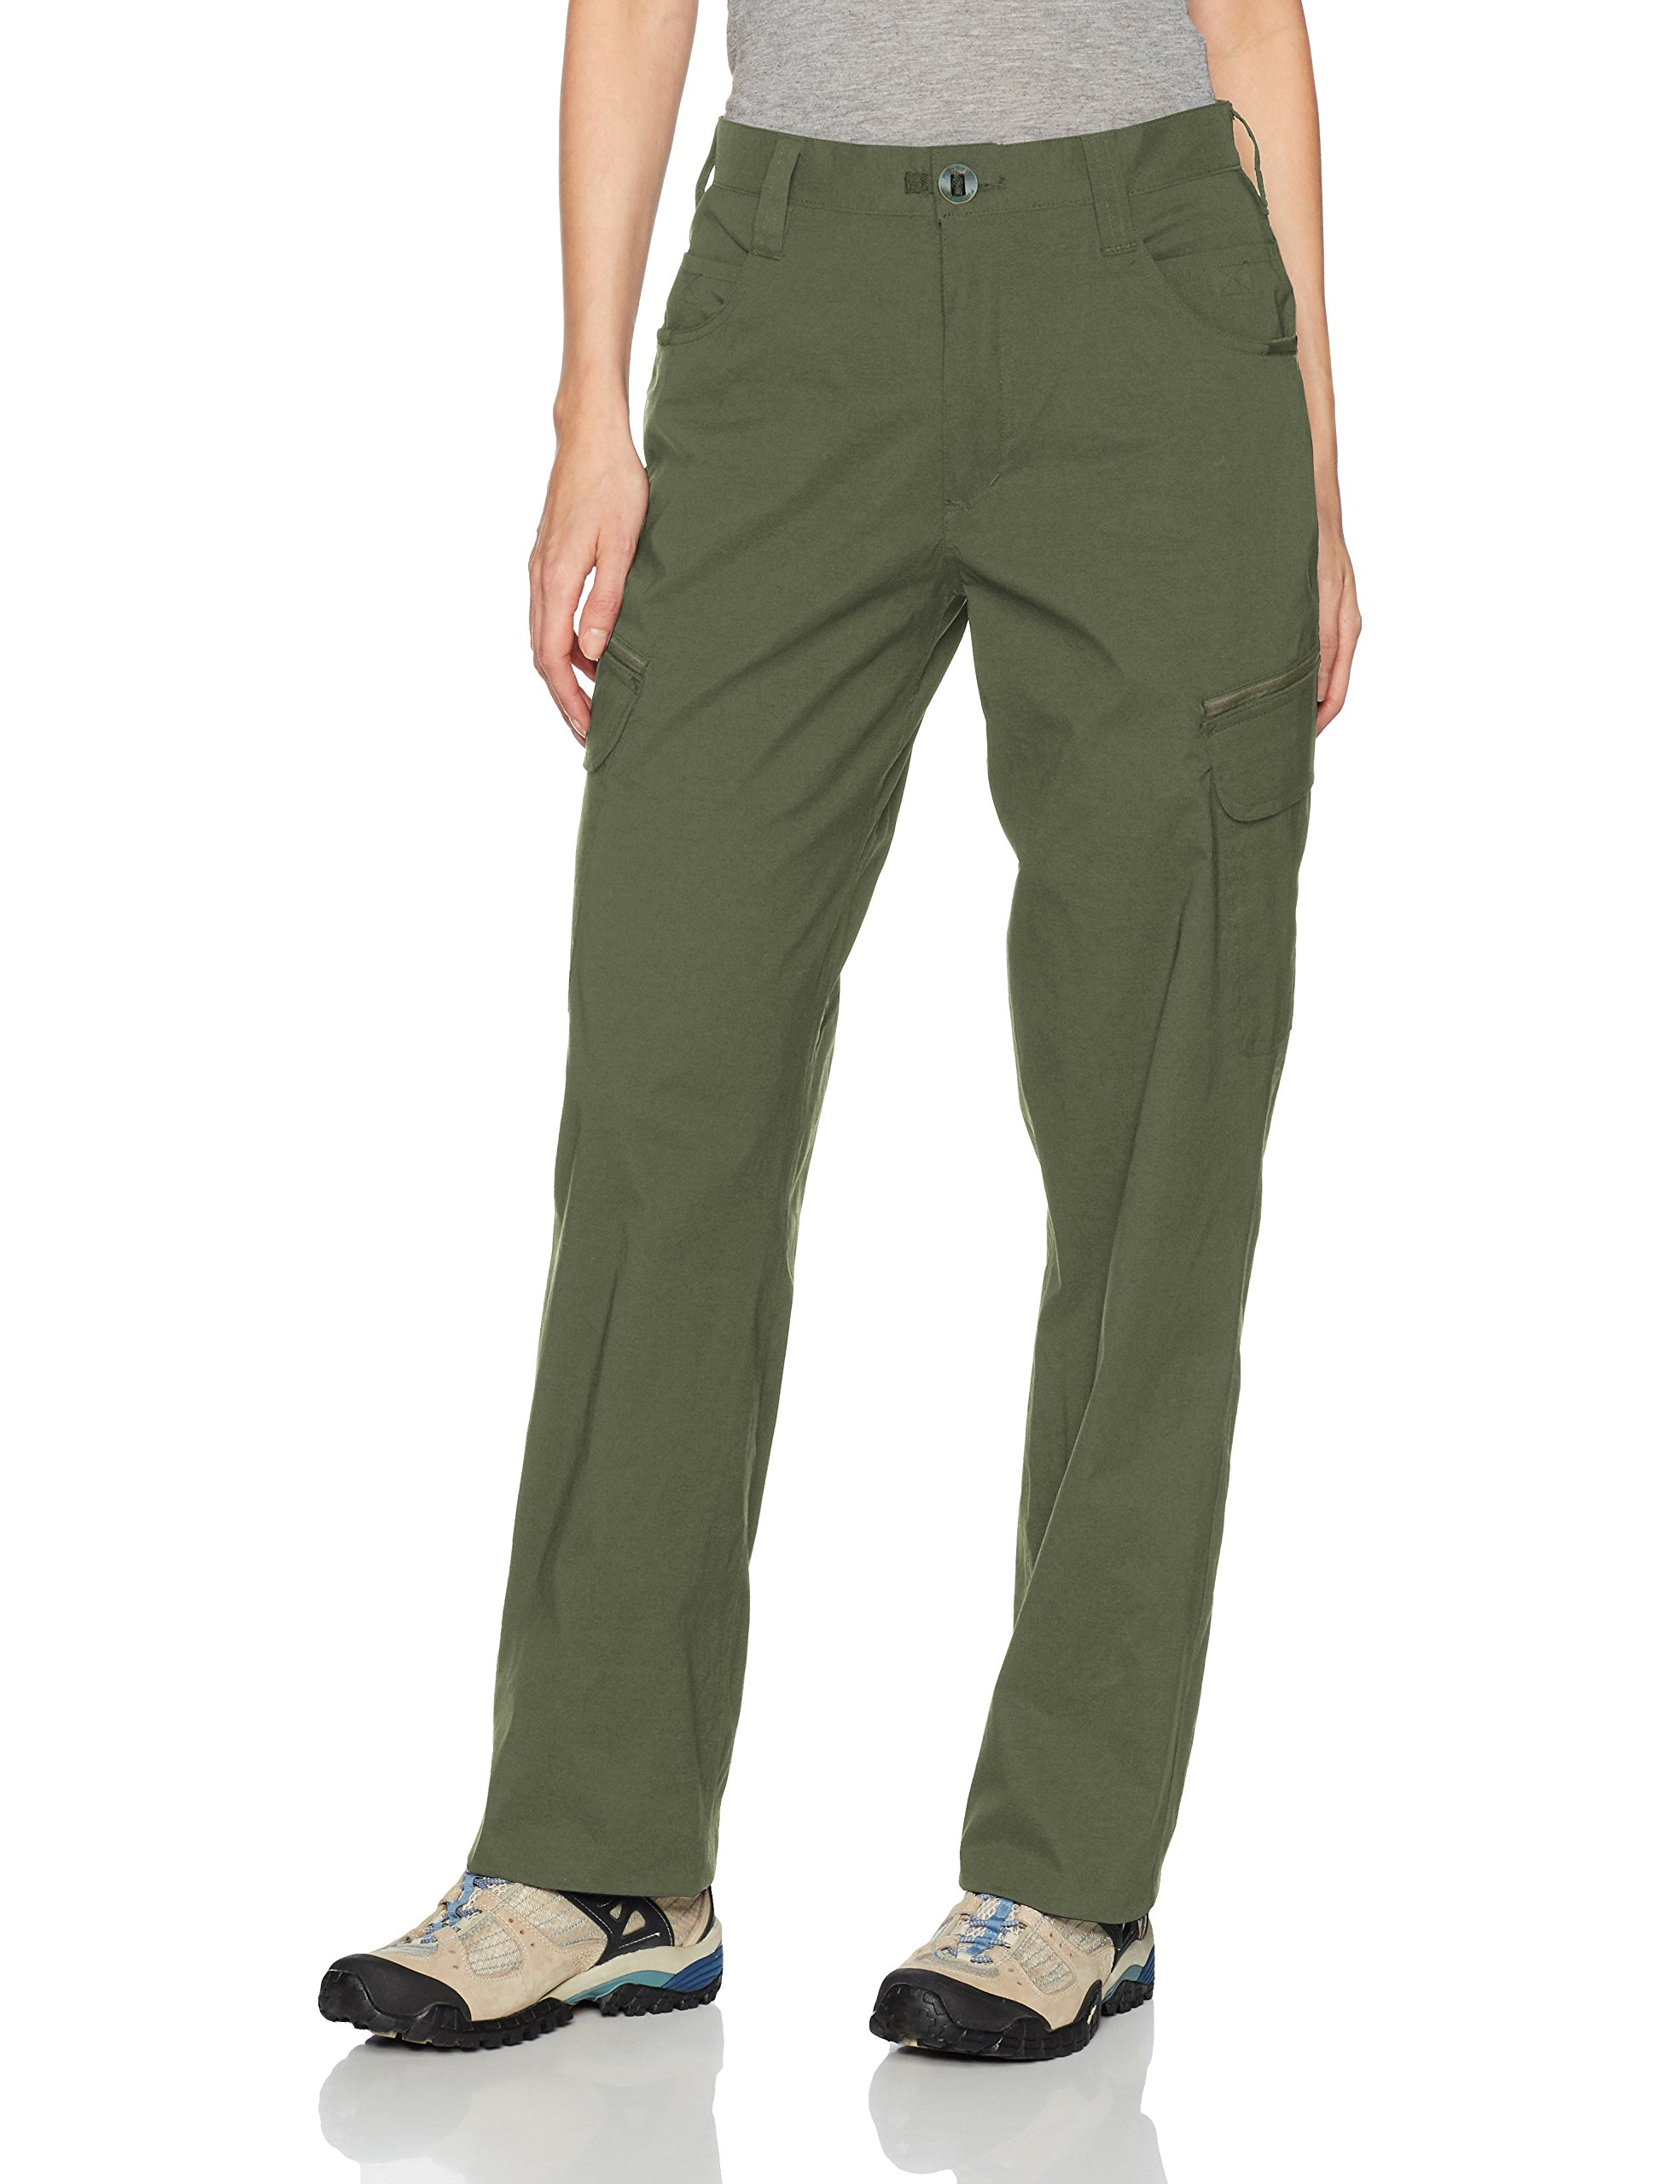 Propper Womens Summerweight Tactical Pant, Olive, 4